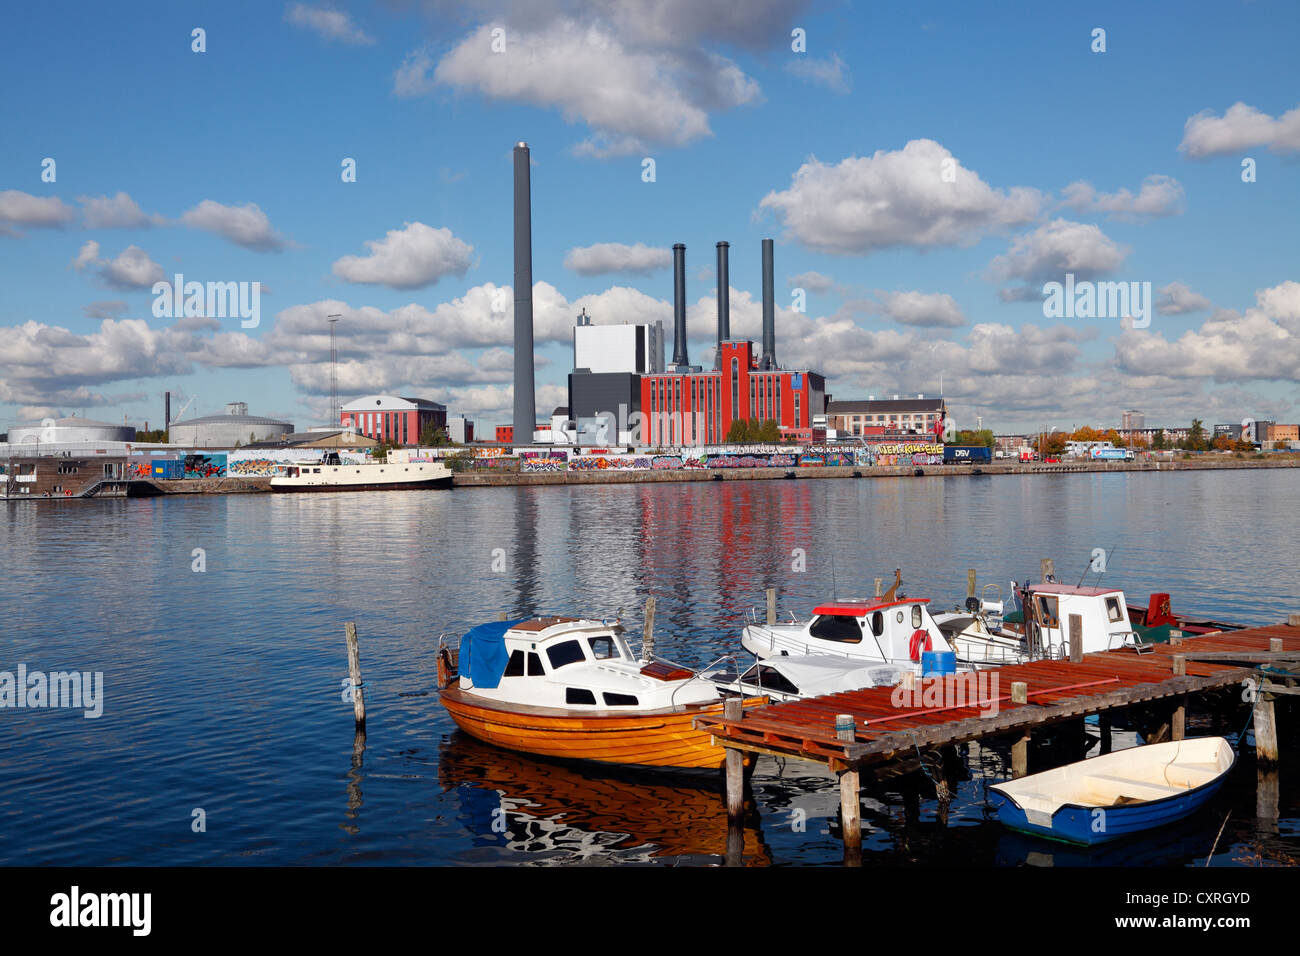 hc-oersted-power-station-in-sydhavnensouth-harbour-copenhagen-denmark-CXRGYD.jpg